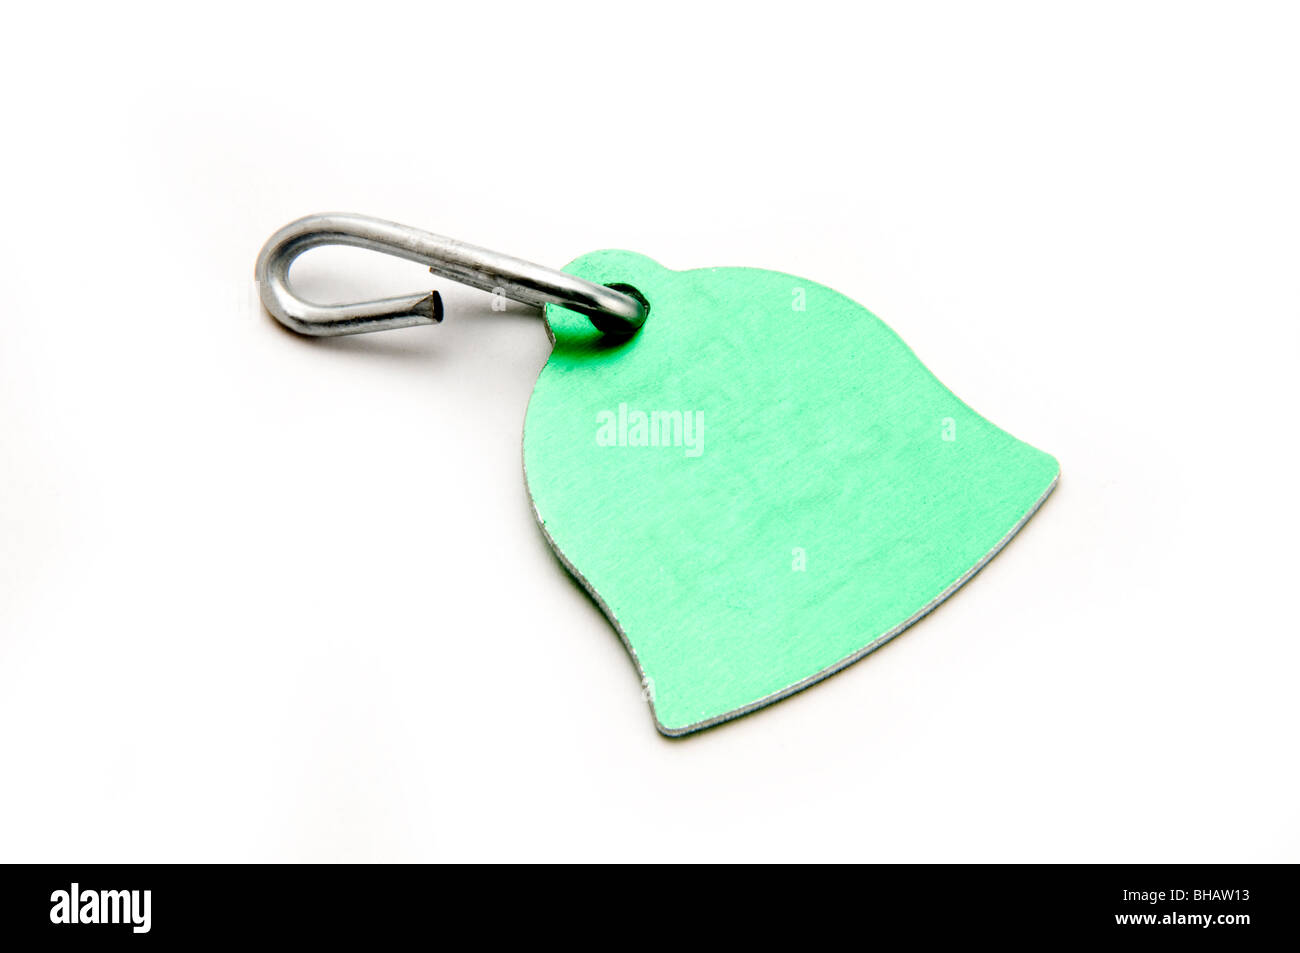 pet tag - Stock Image